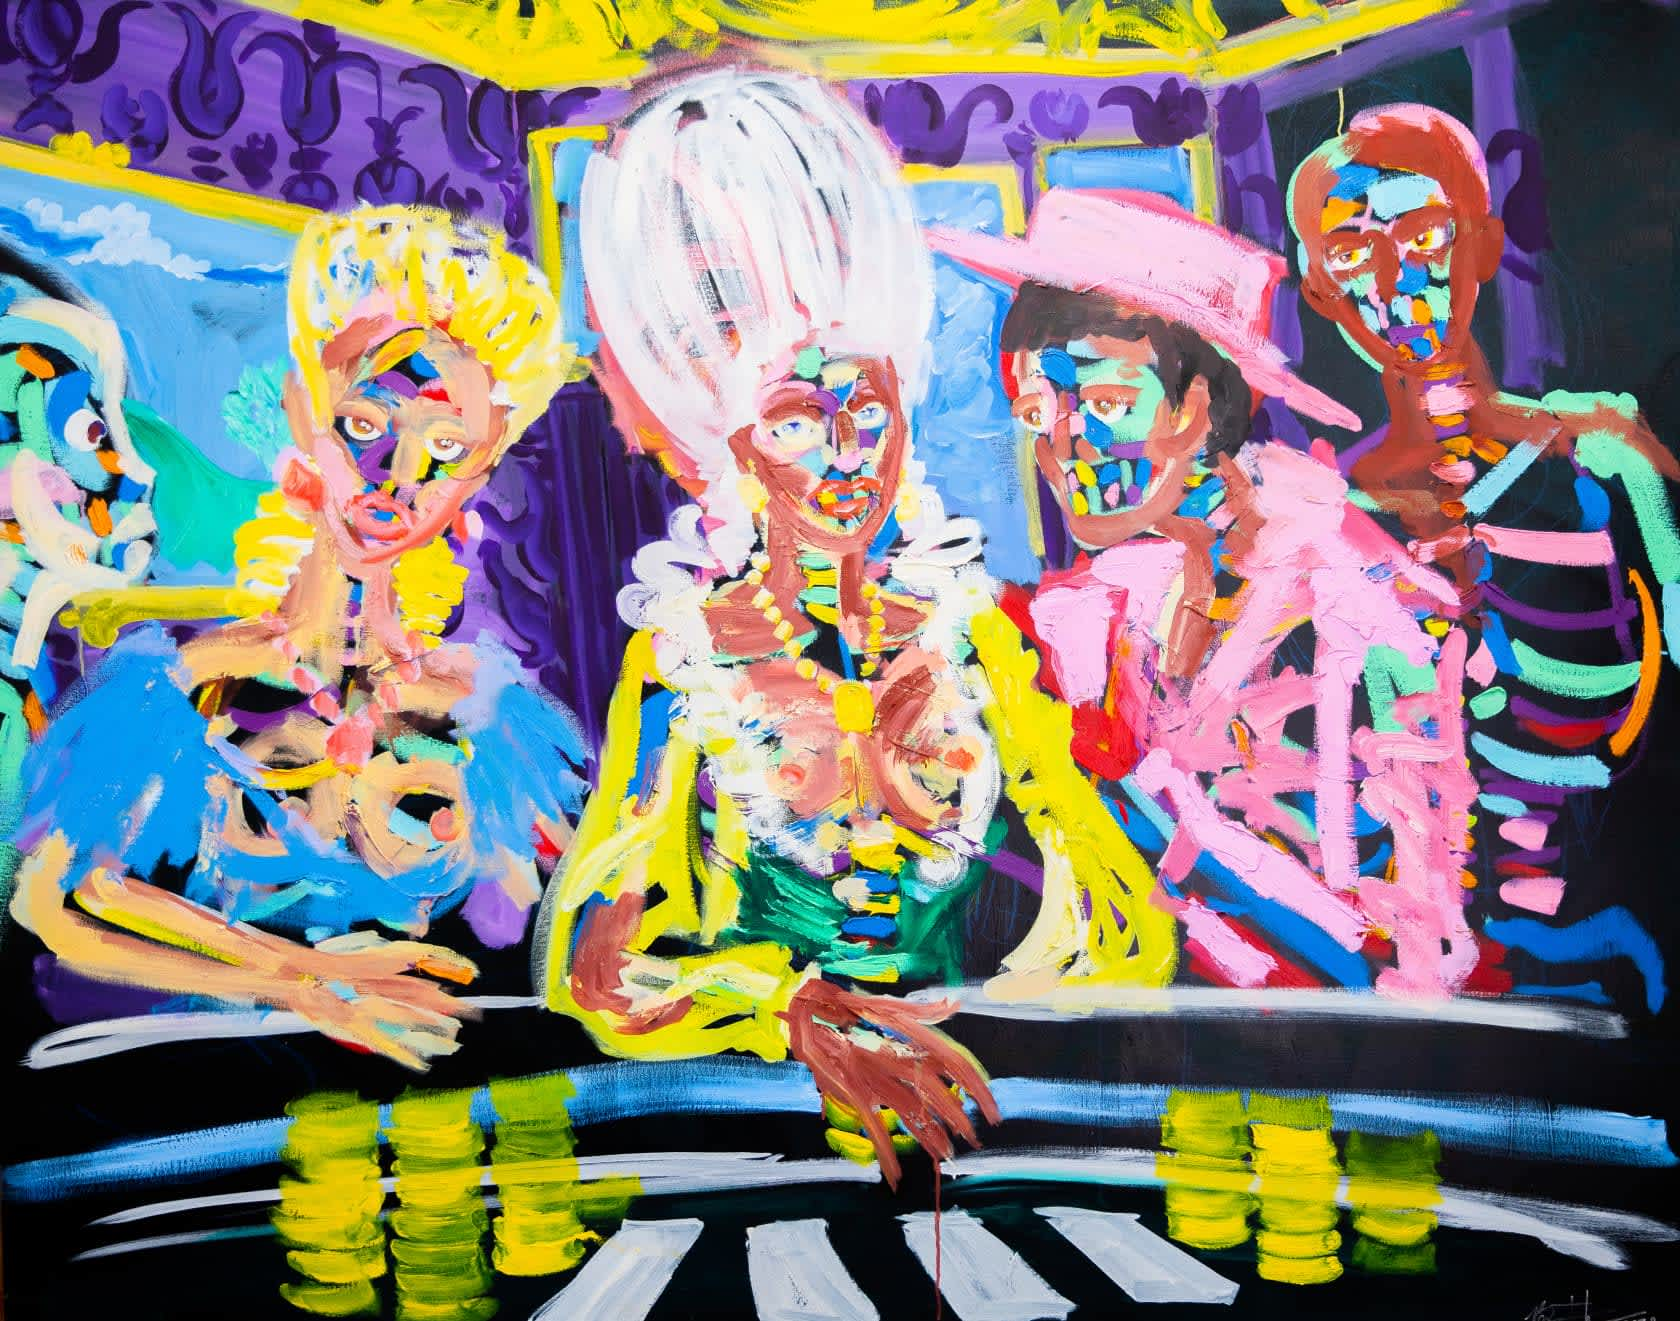 Modern Day Artists Inspired by the 18th Century, From the Miaz Brothers to Bradley Theodore, we look at the artists...